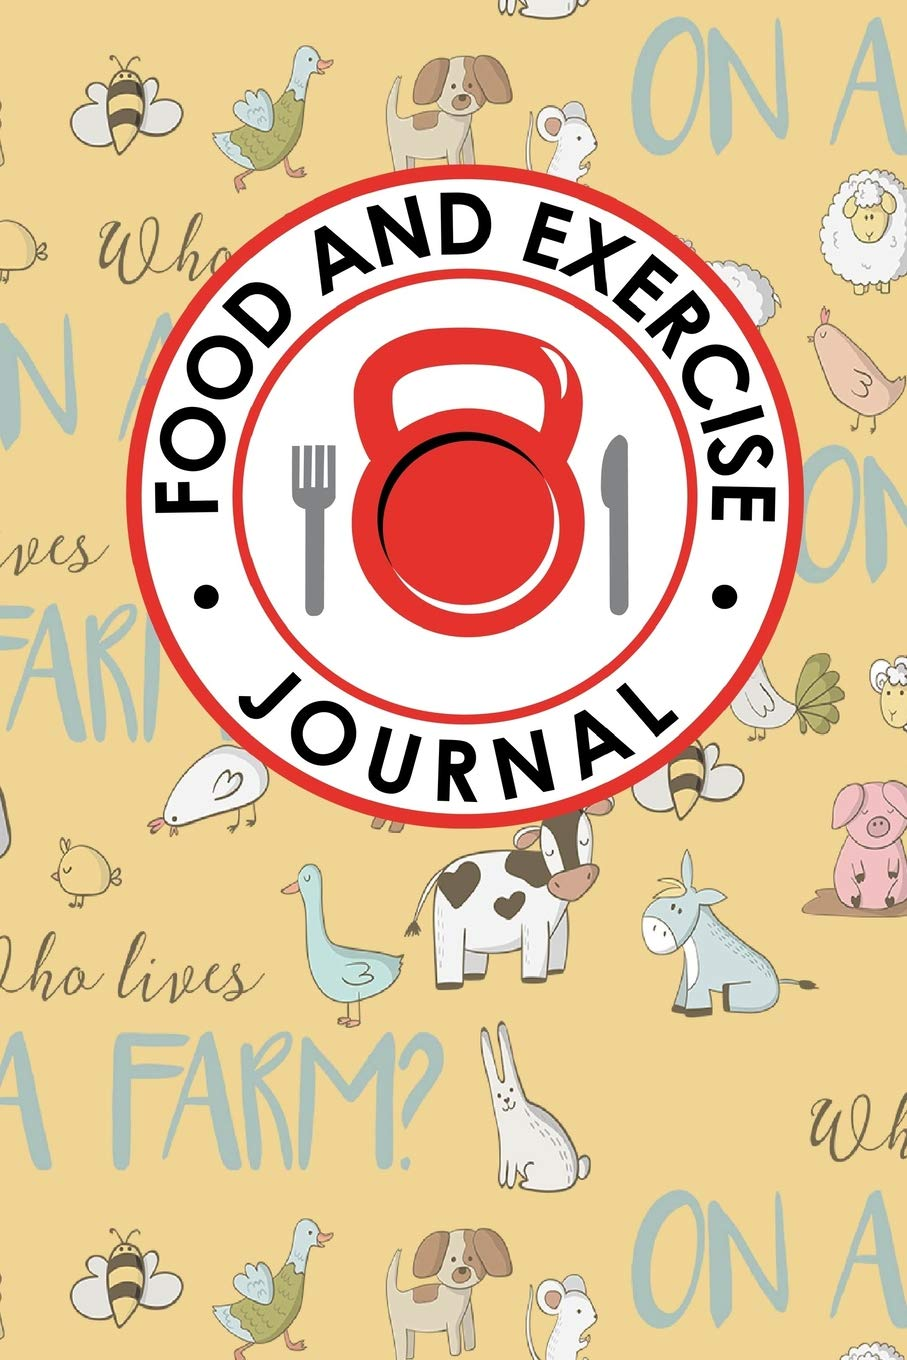 Food And Exercise Journal Daily Food Journal Template Food Journal Calorie Counter Food And Fitness Journal My Food Journal Food And Exercise Journal Book Volume 3 Publishing Rogue Plus 9781718798748 Amazon Com Books